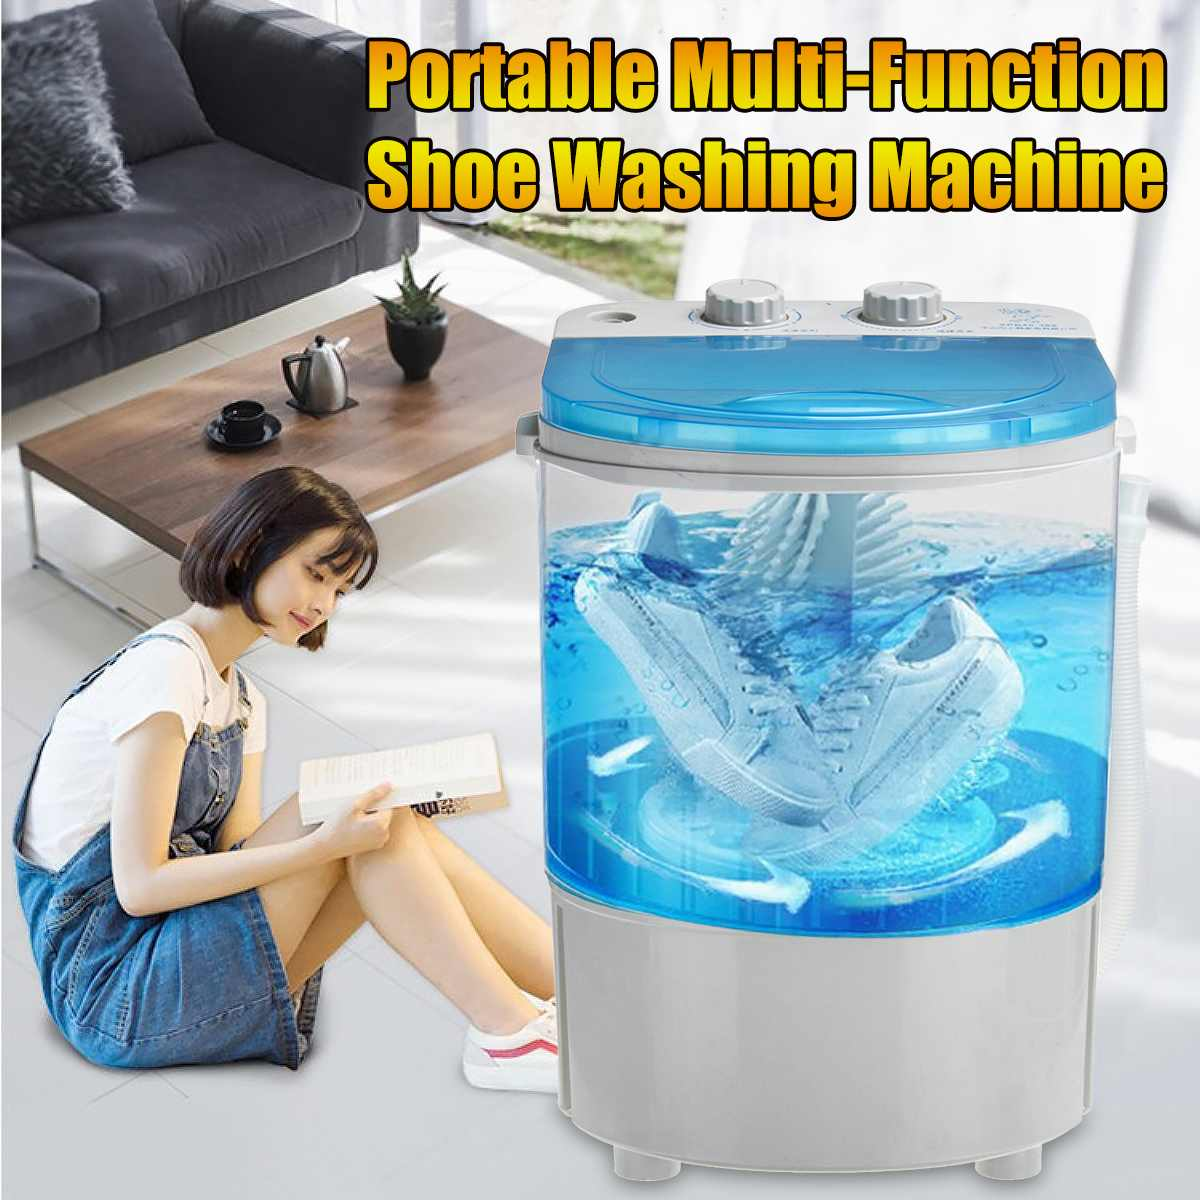 5kg Shoes Washing Machine Mini Single Tube Washer And Dryer Machine For Shoes Clothes Dual-use Shoes Cleaner Single-Barrel 220V